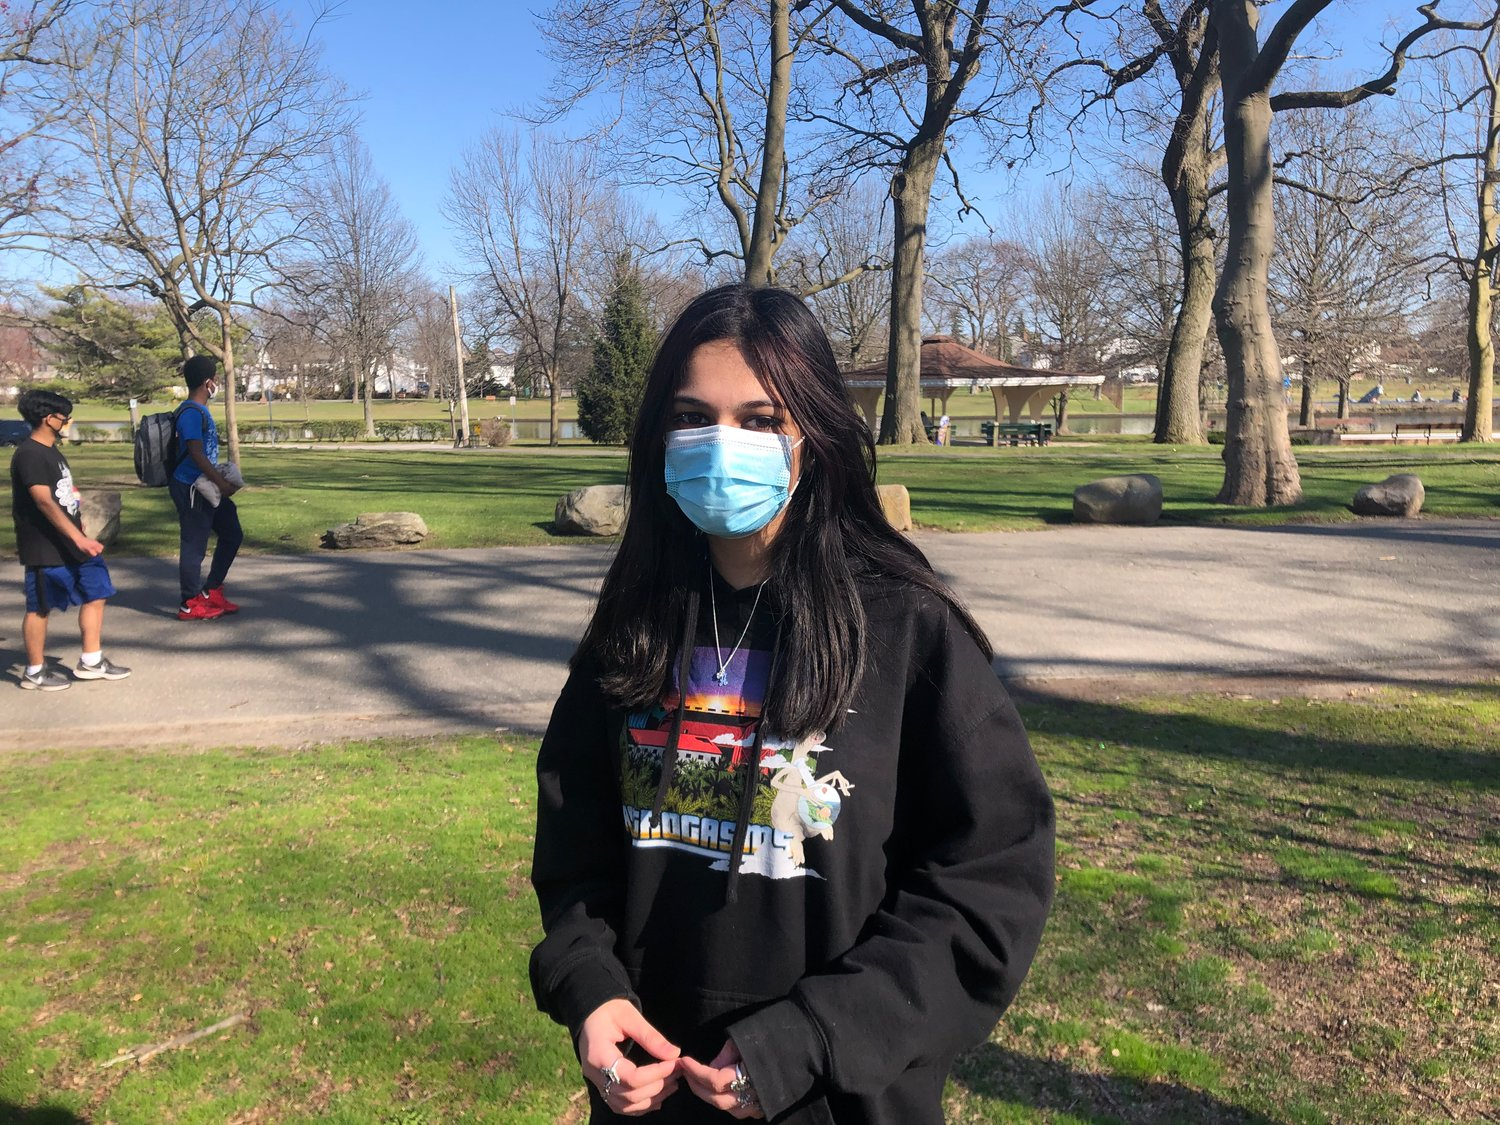 Ama Bhatti, 14, above, said she was excited about spring because she can go outside more often to practice tricks on her skateboard.